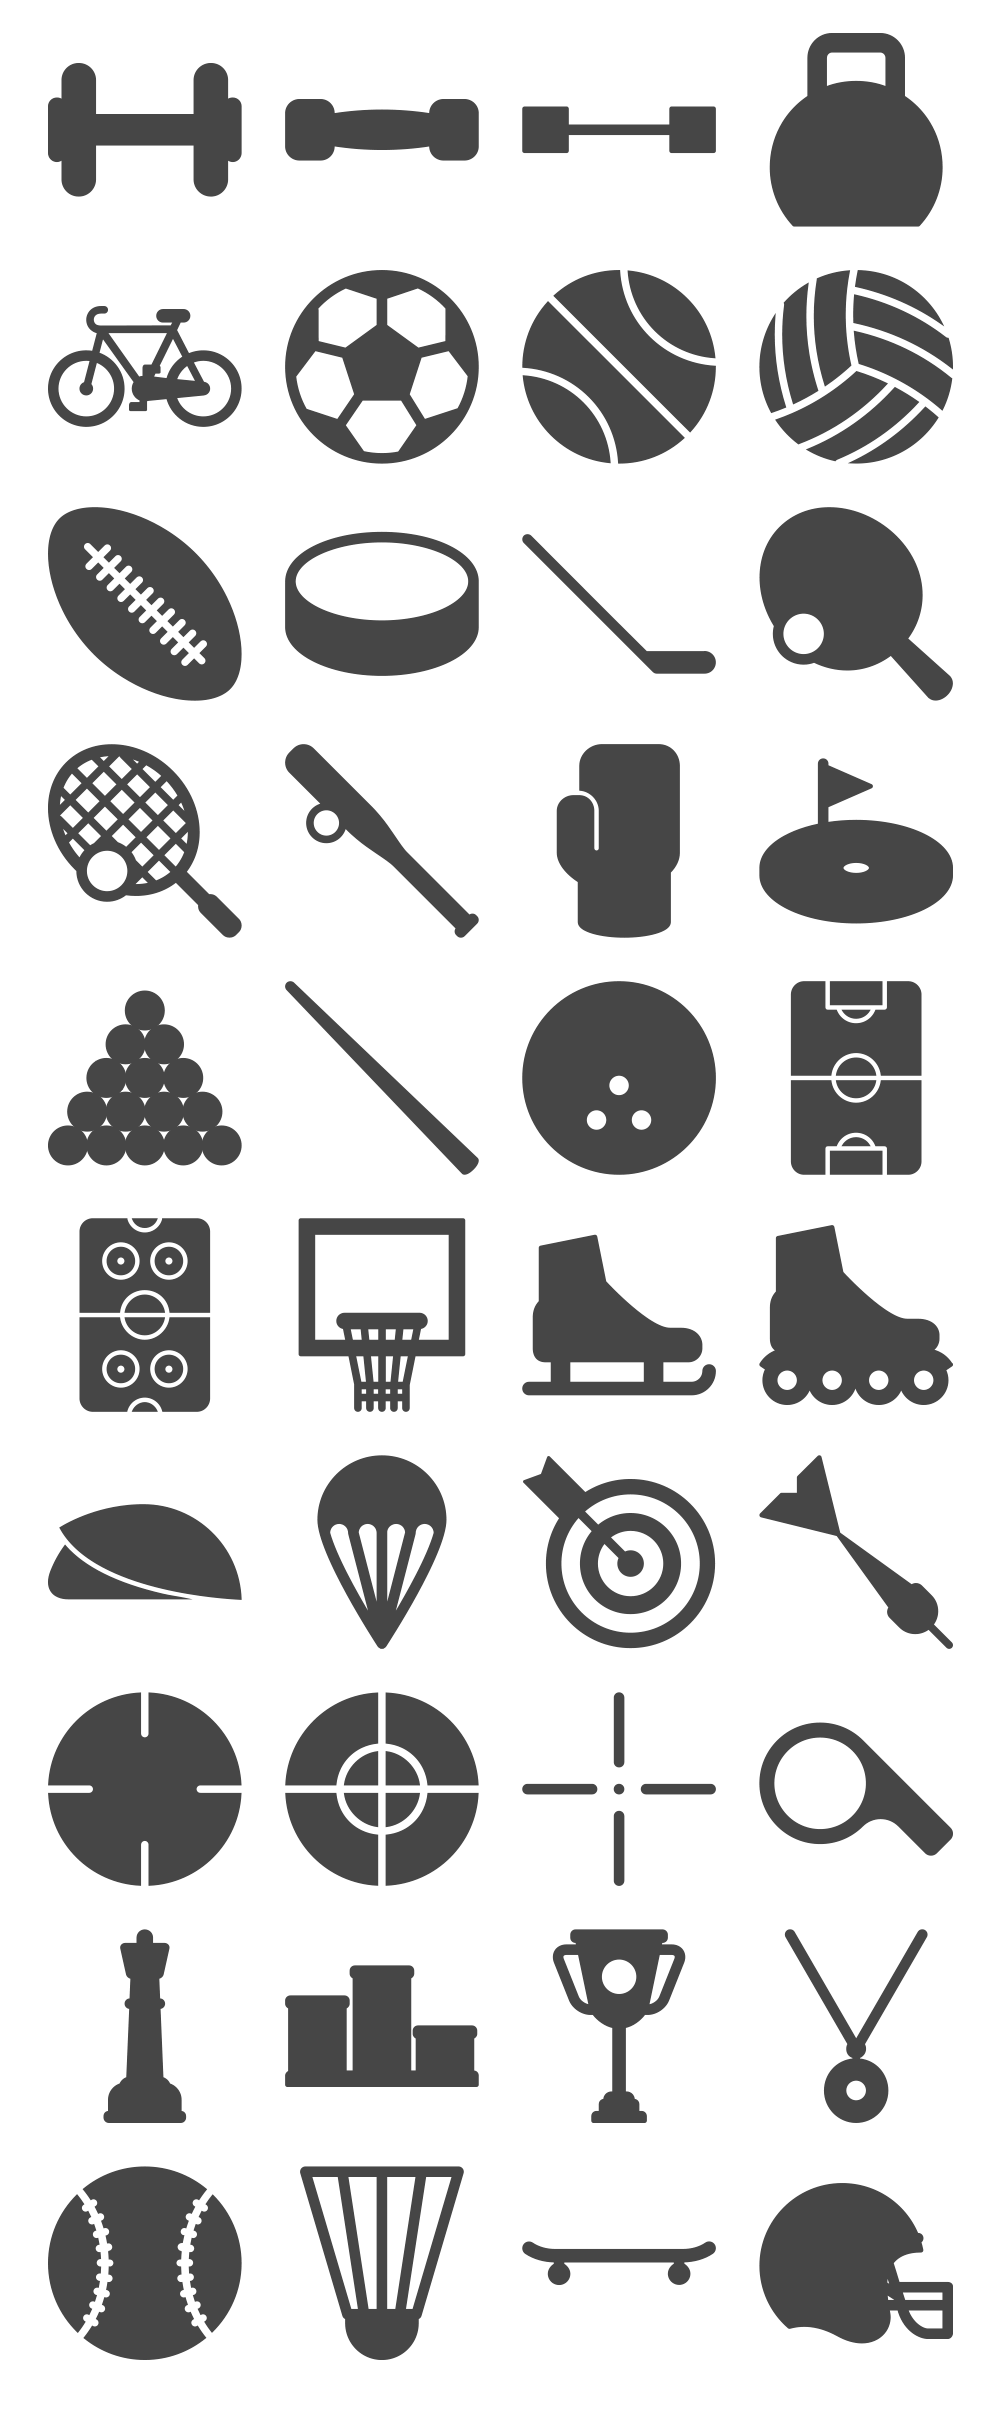 40 Responsive Sports Icons [Freebie] — Smashing Magazine.